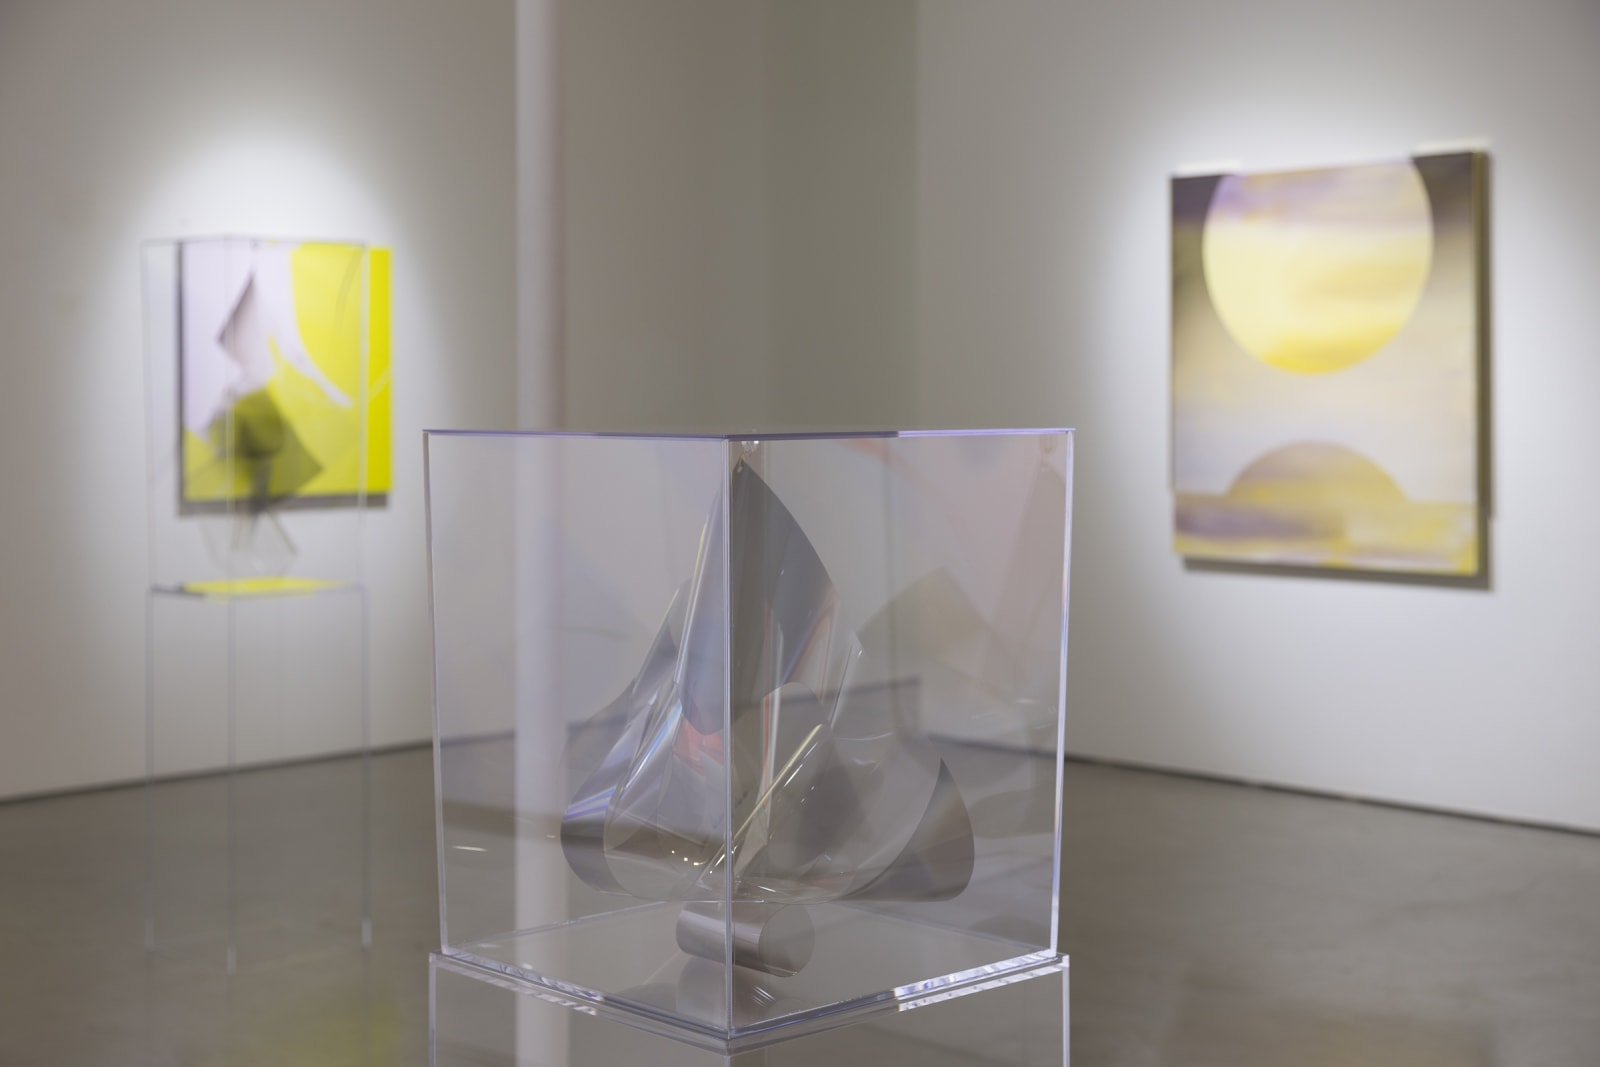 Atmospheric Abstraction | Larry Bell, Gisela Colón, Mara De Luca, and Heather Gwen Martin